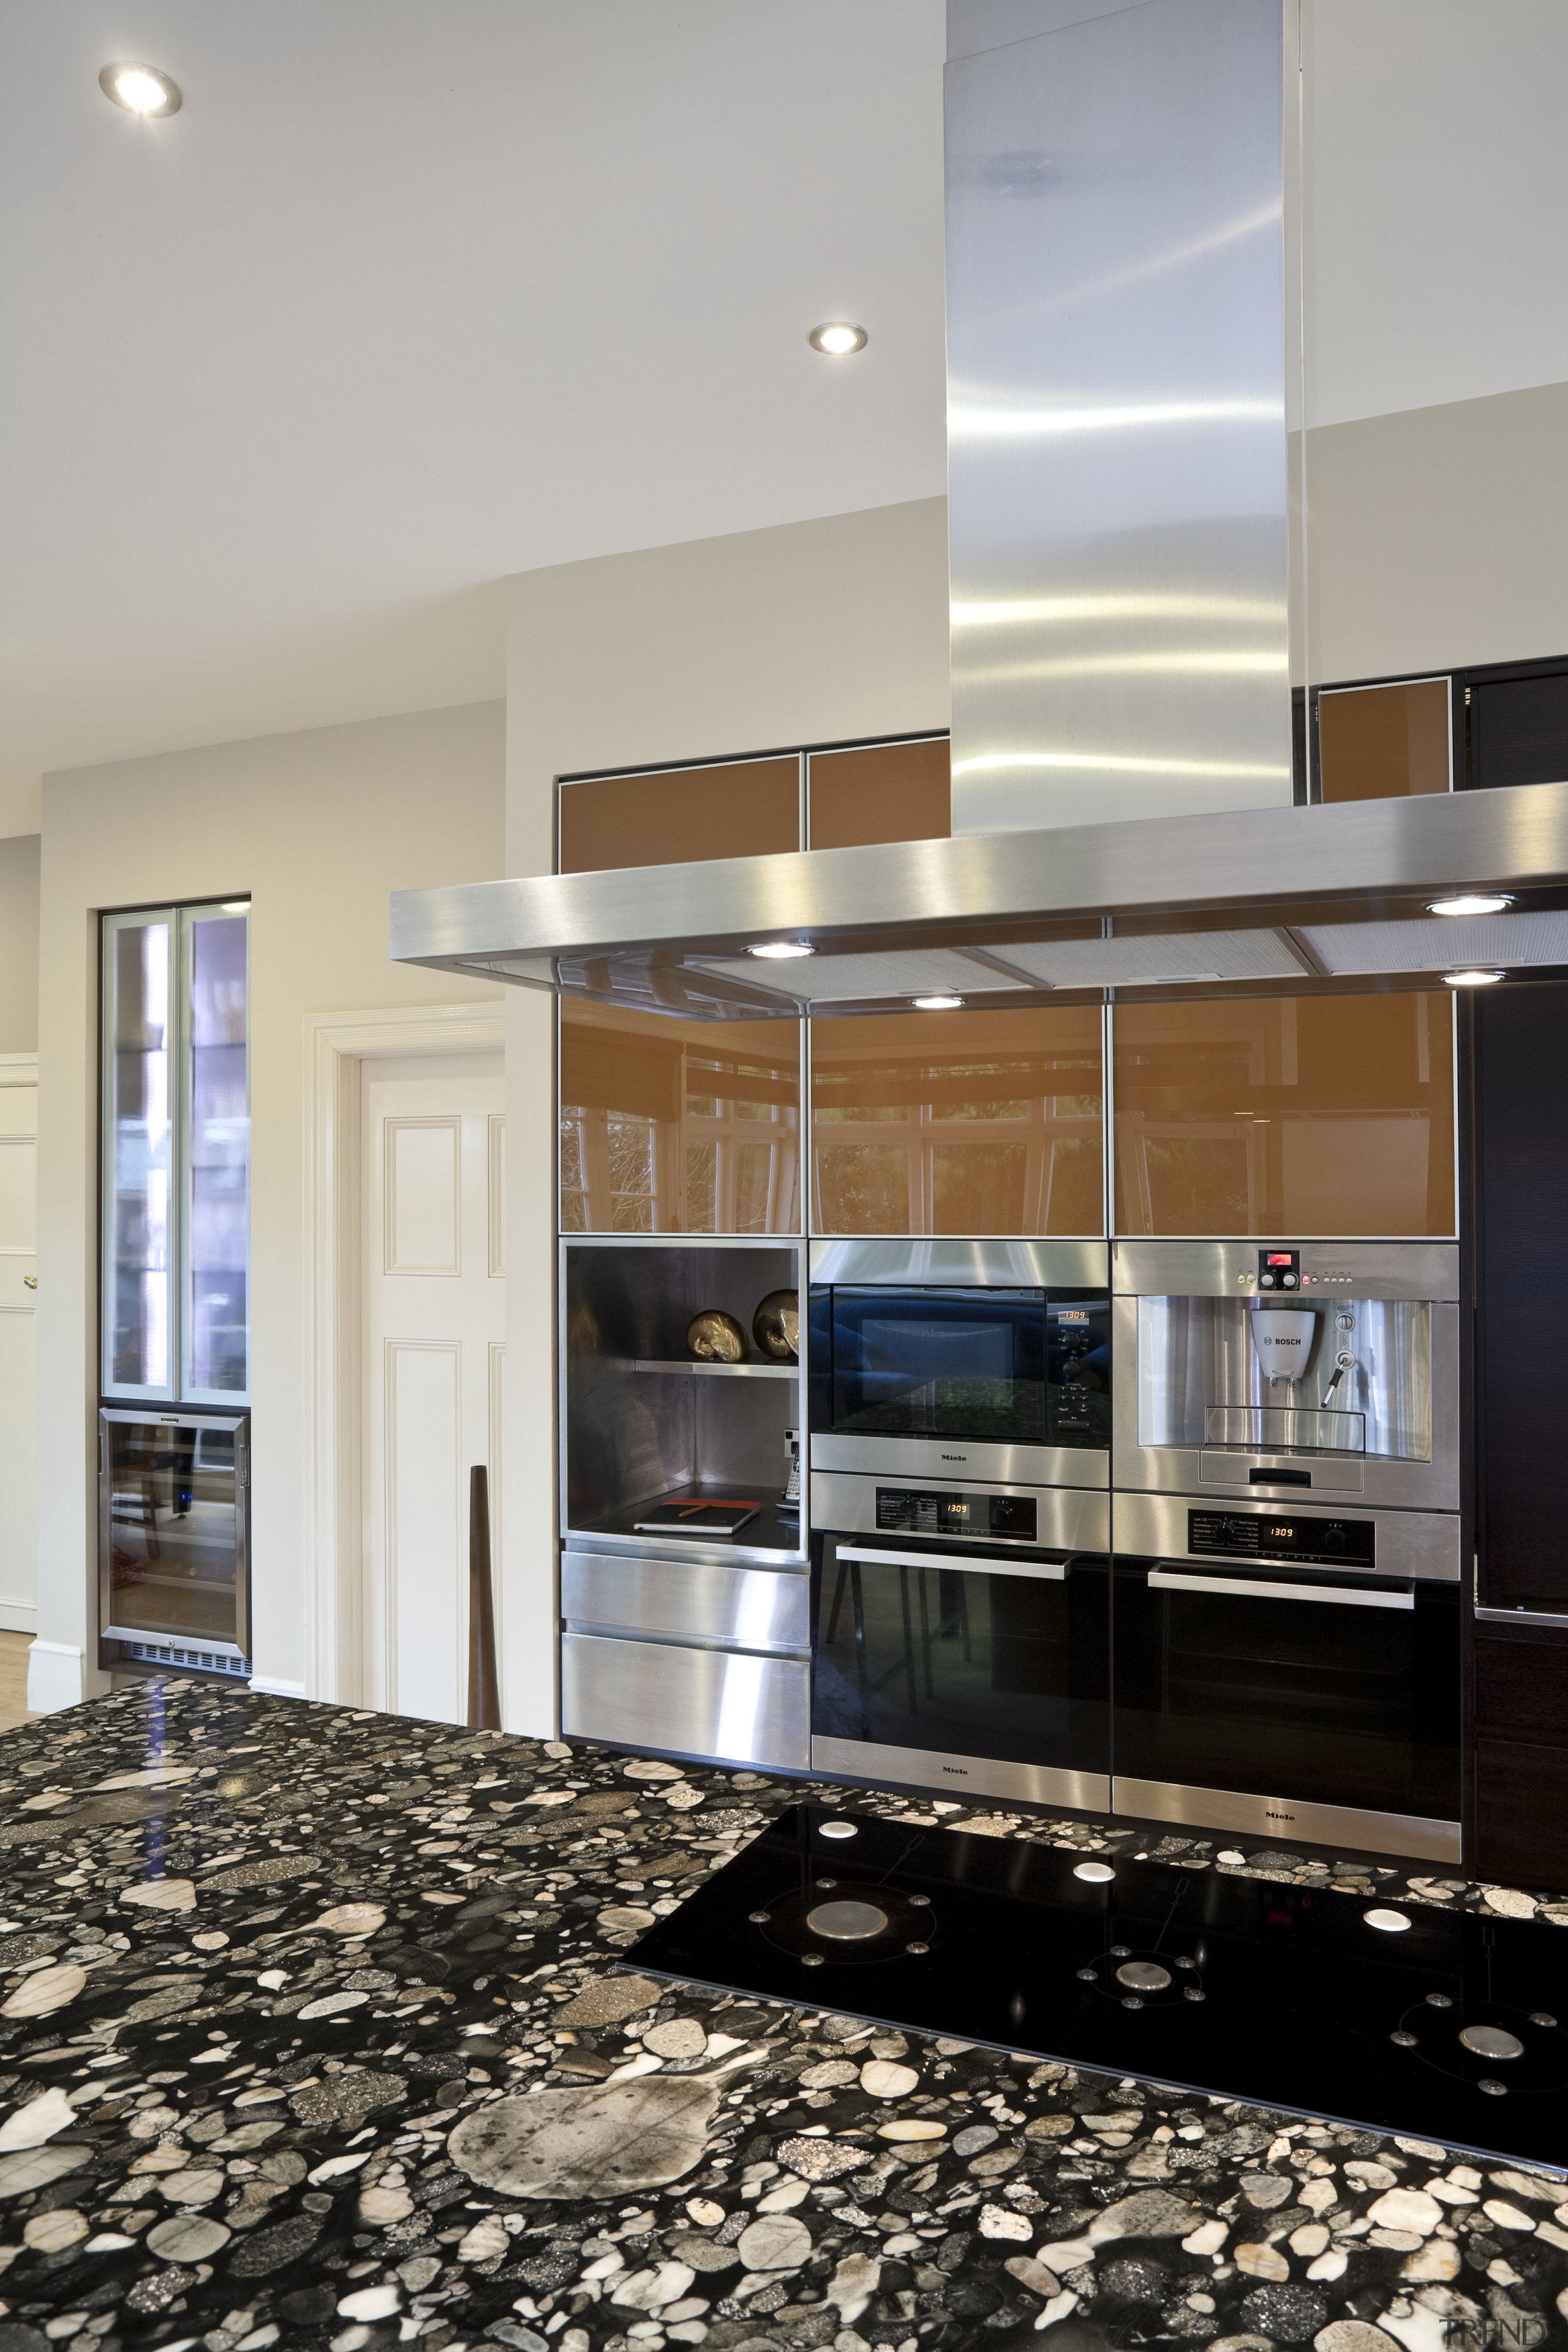 So this area looks good even when the ceiling, countertop, flooring, interior design, kitchen, gray, black